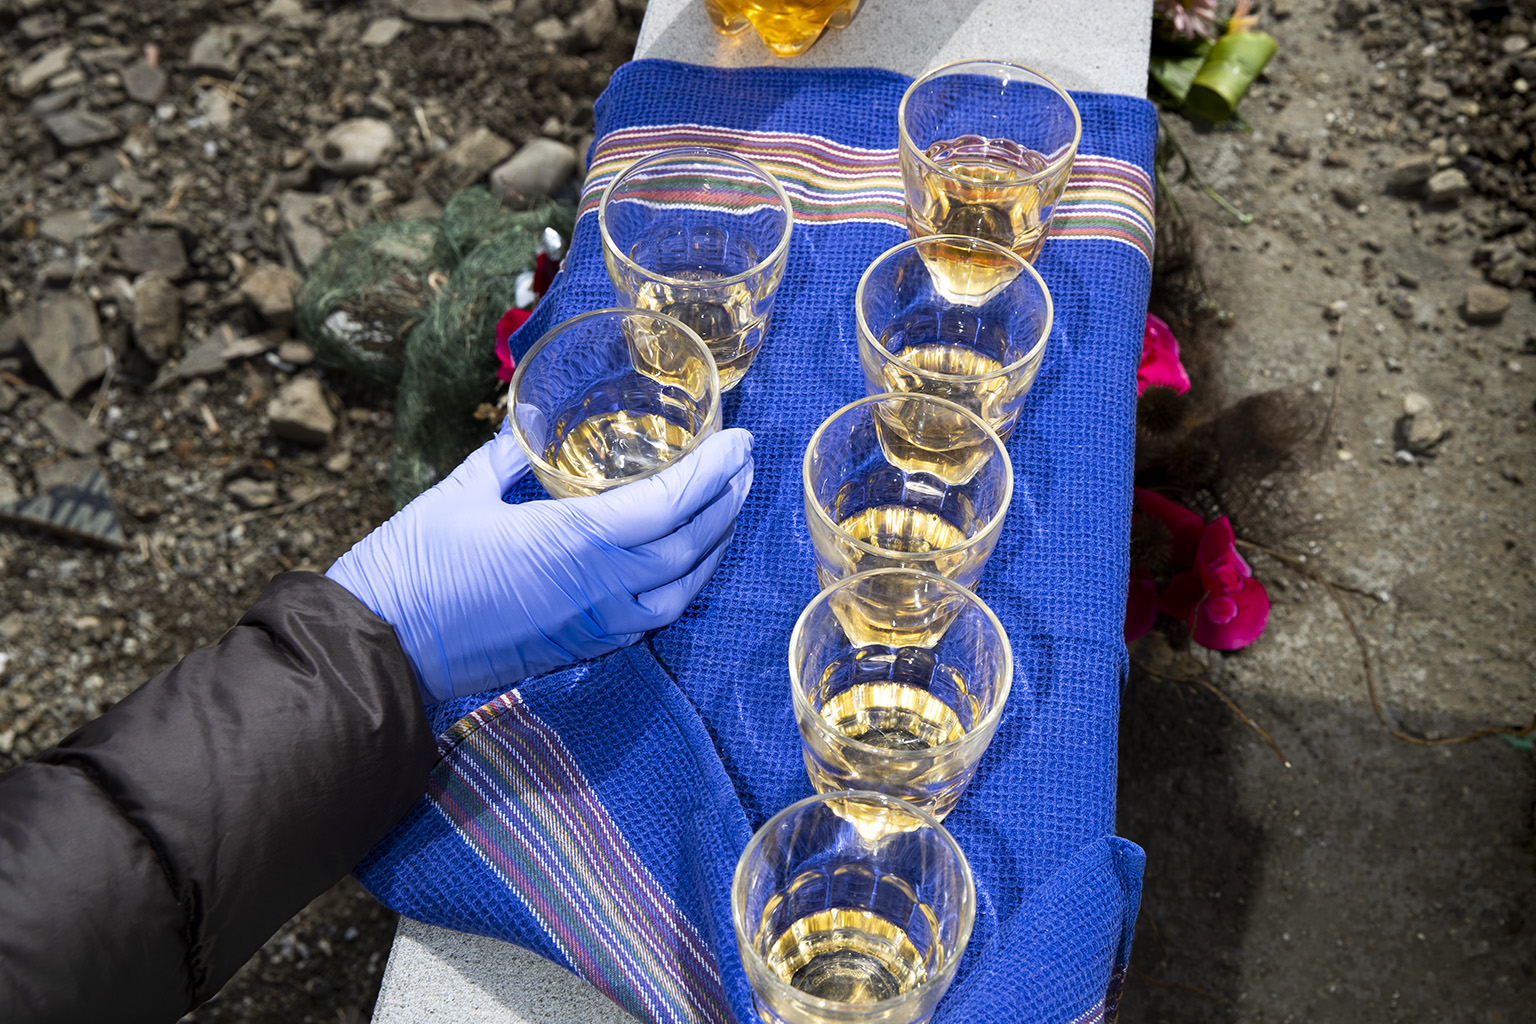 Our Georgian tradition, raising a glass of wine, saying a prayer, drinking the half of the glass and pouring the rest on the grave.  I would never imagine a close person to our family would pass away during the epidemic.